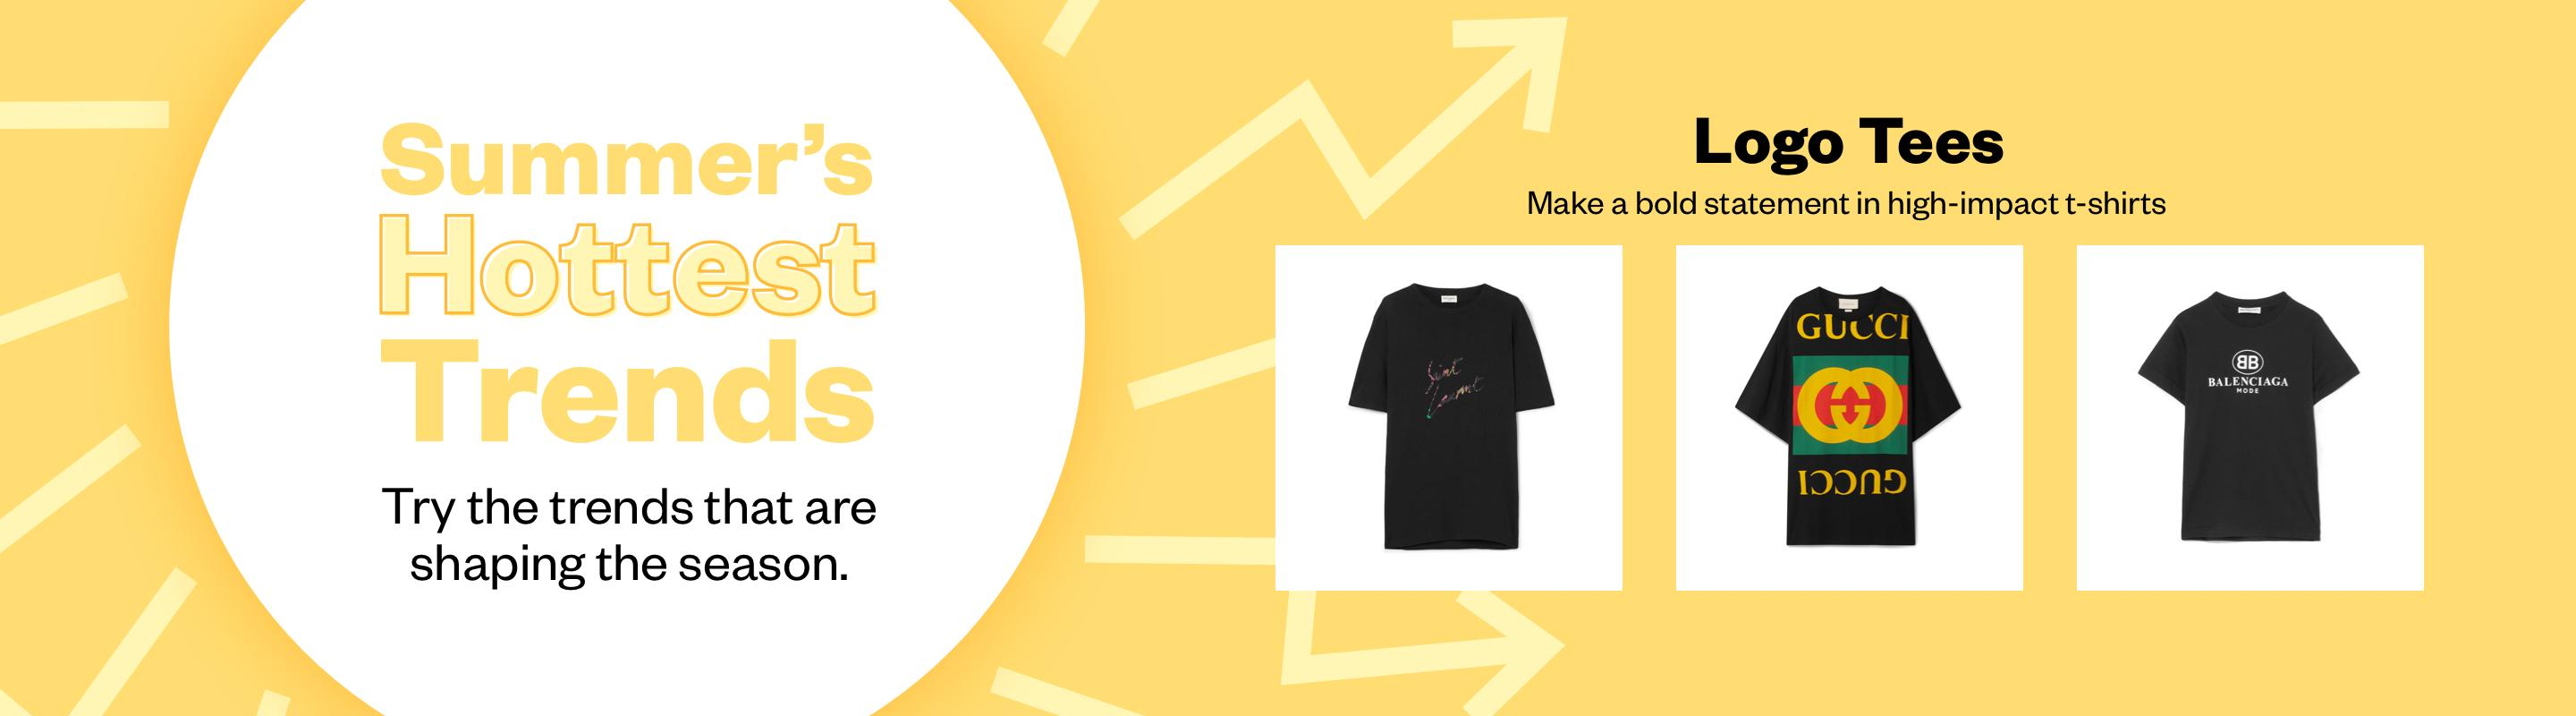 Summer's Hottest Trends: Logo Tees